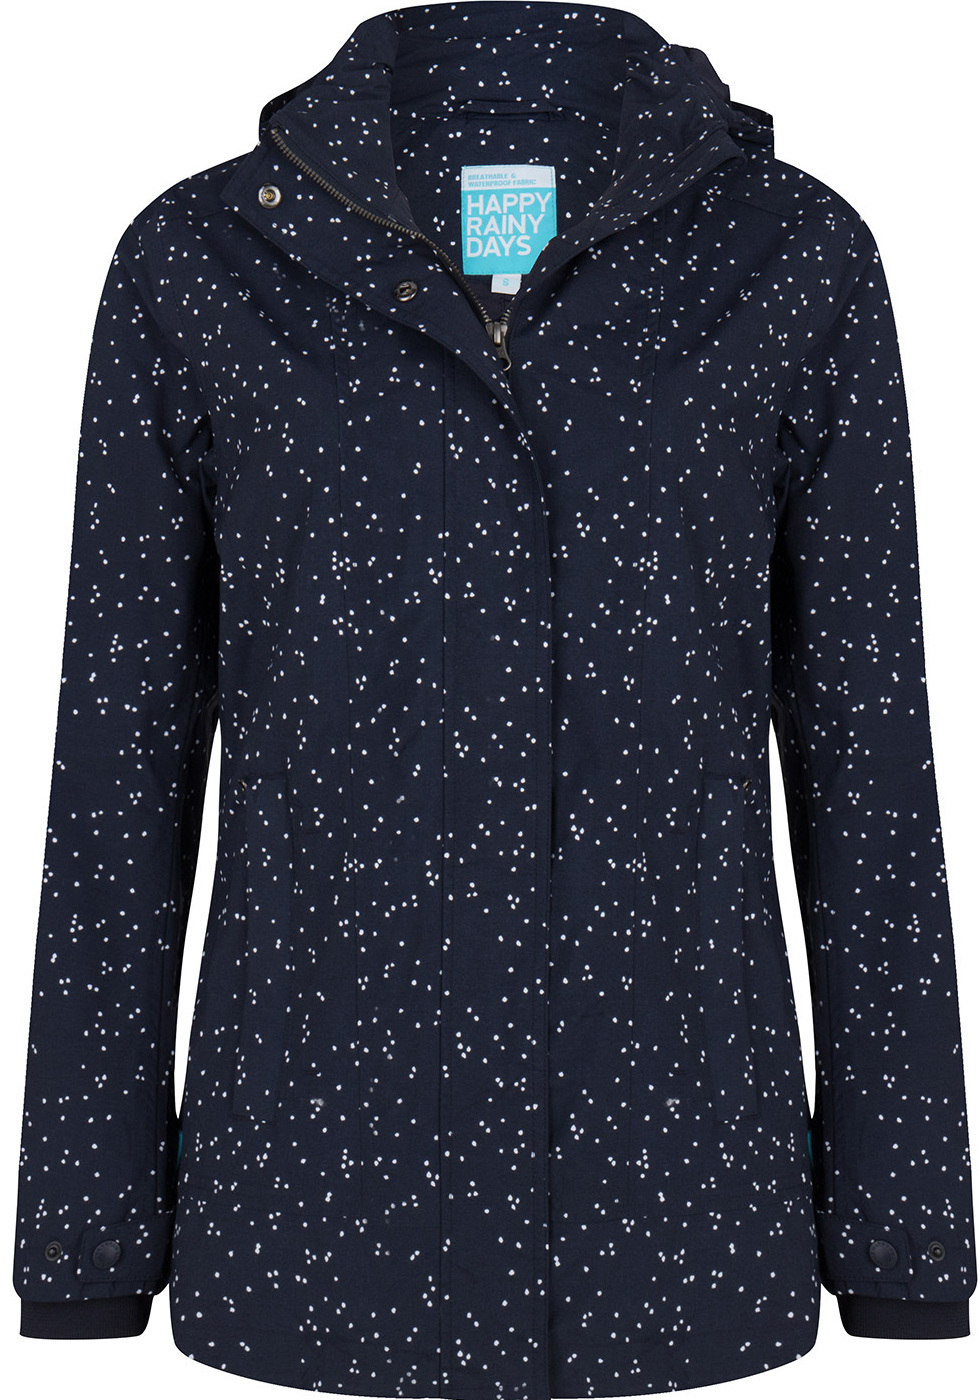 Happy Rainy Days Jacket Milou regenjas